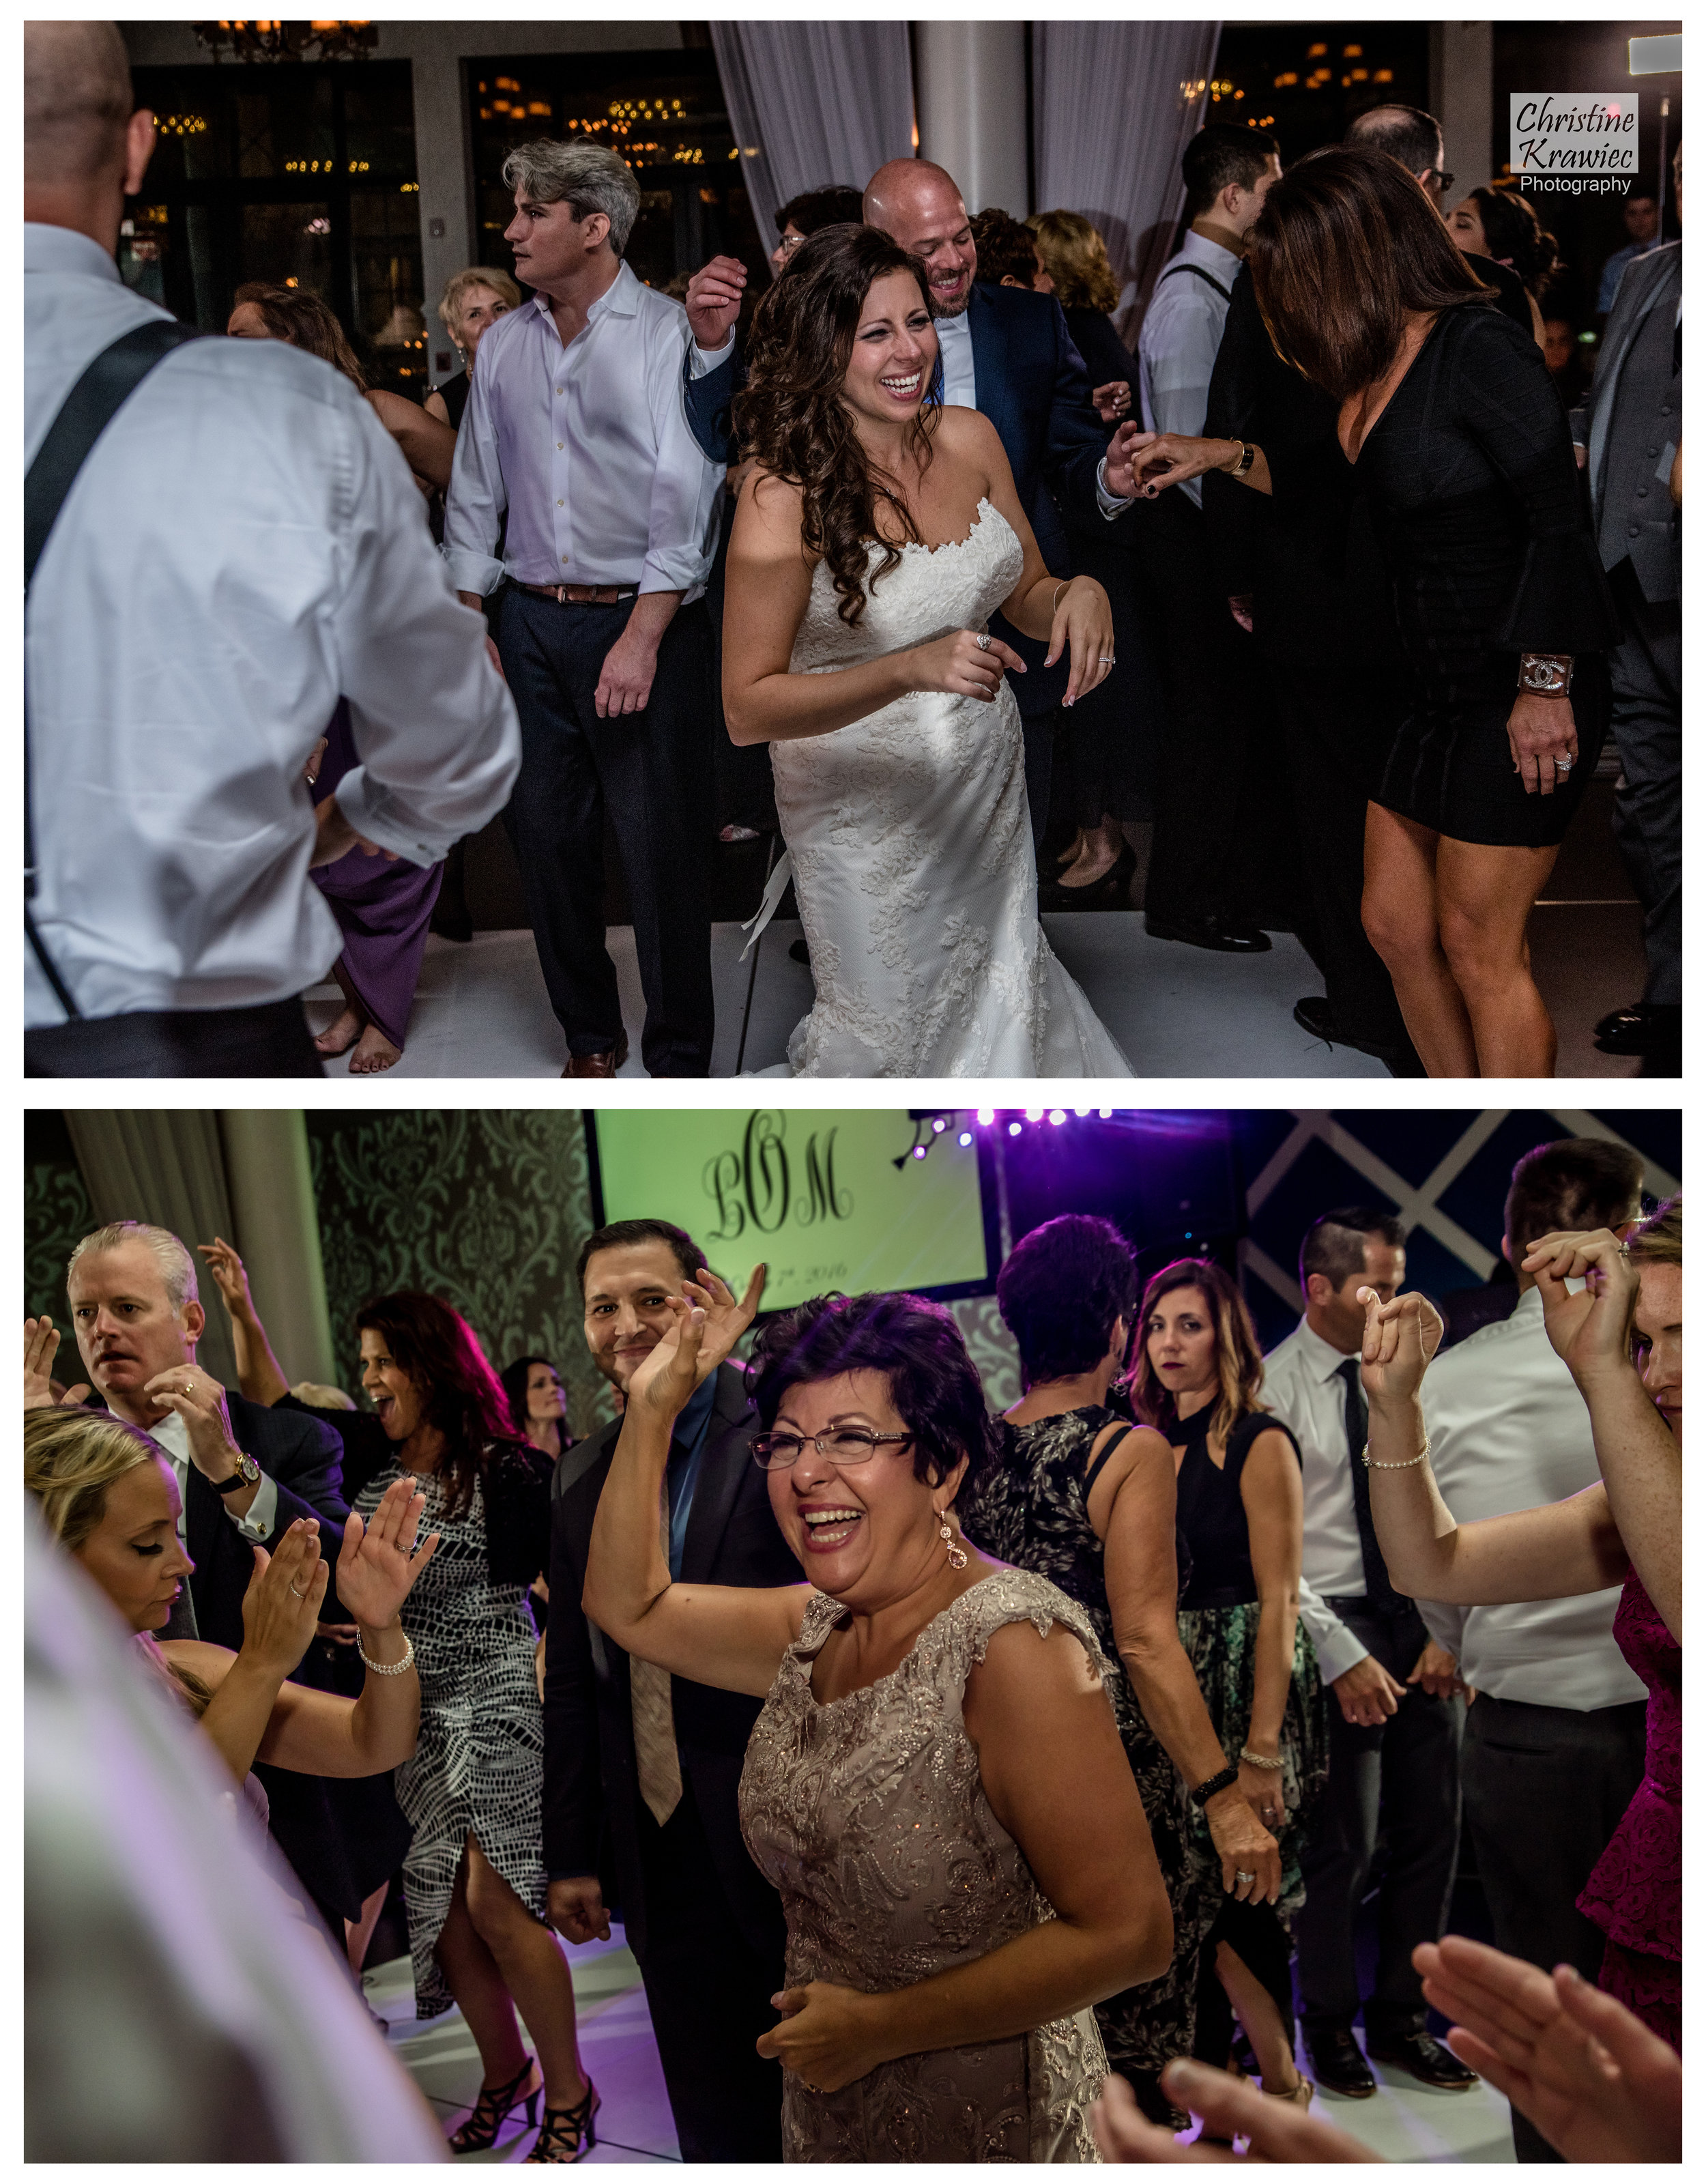 This group knows how to have a good time on the dance floor!